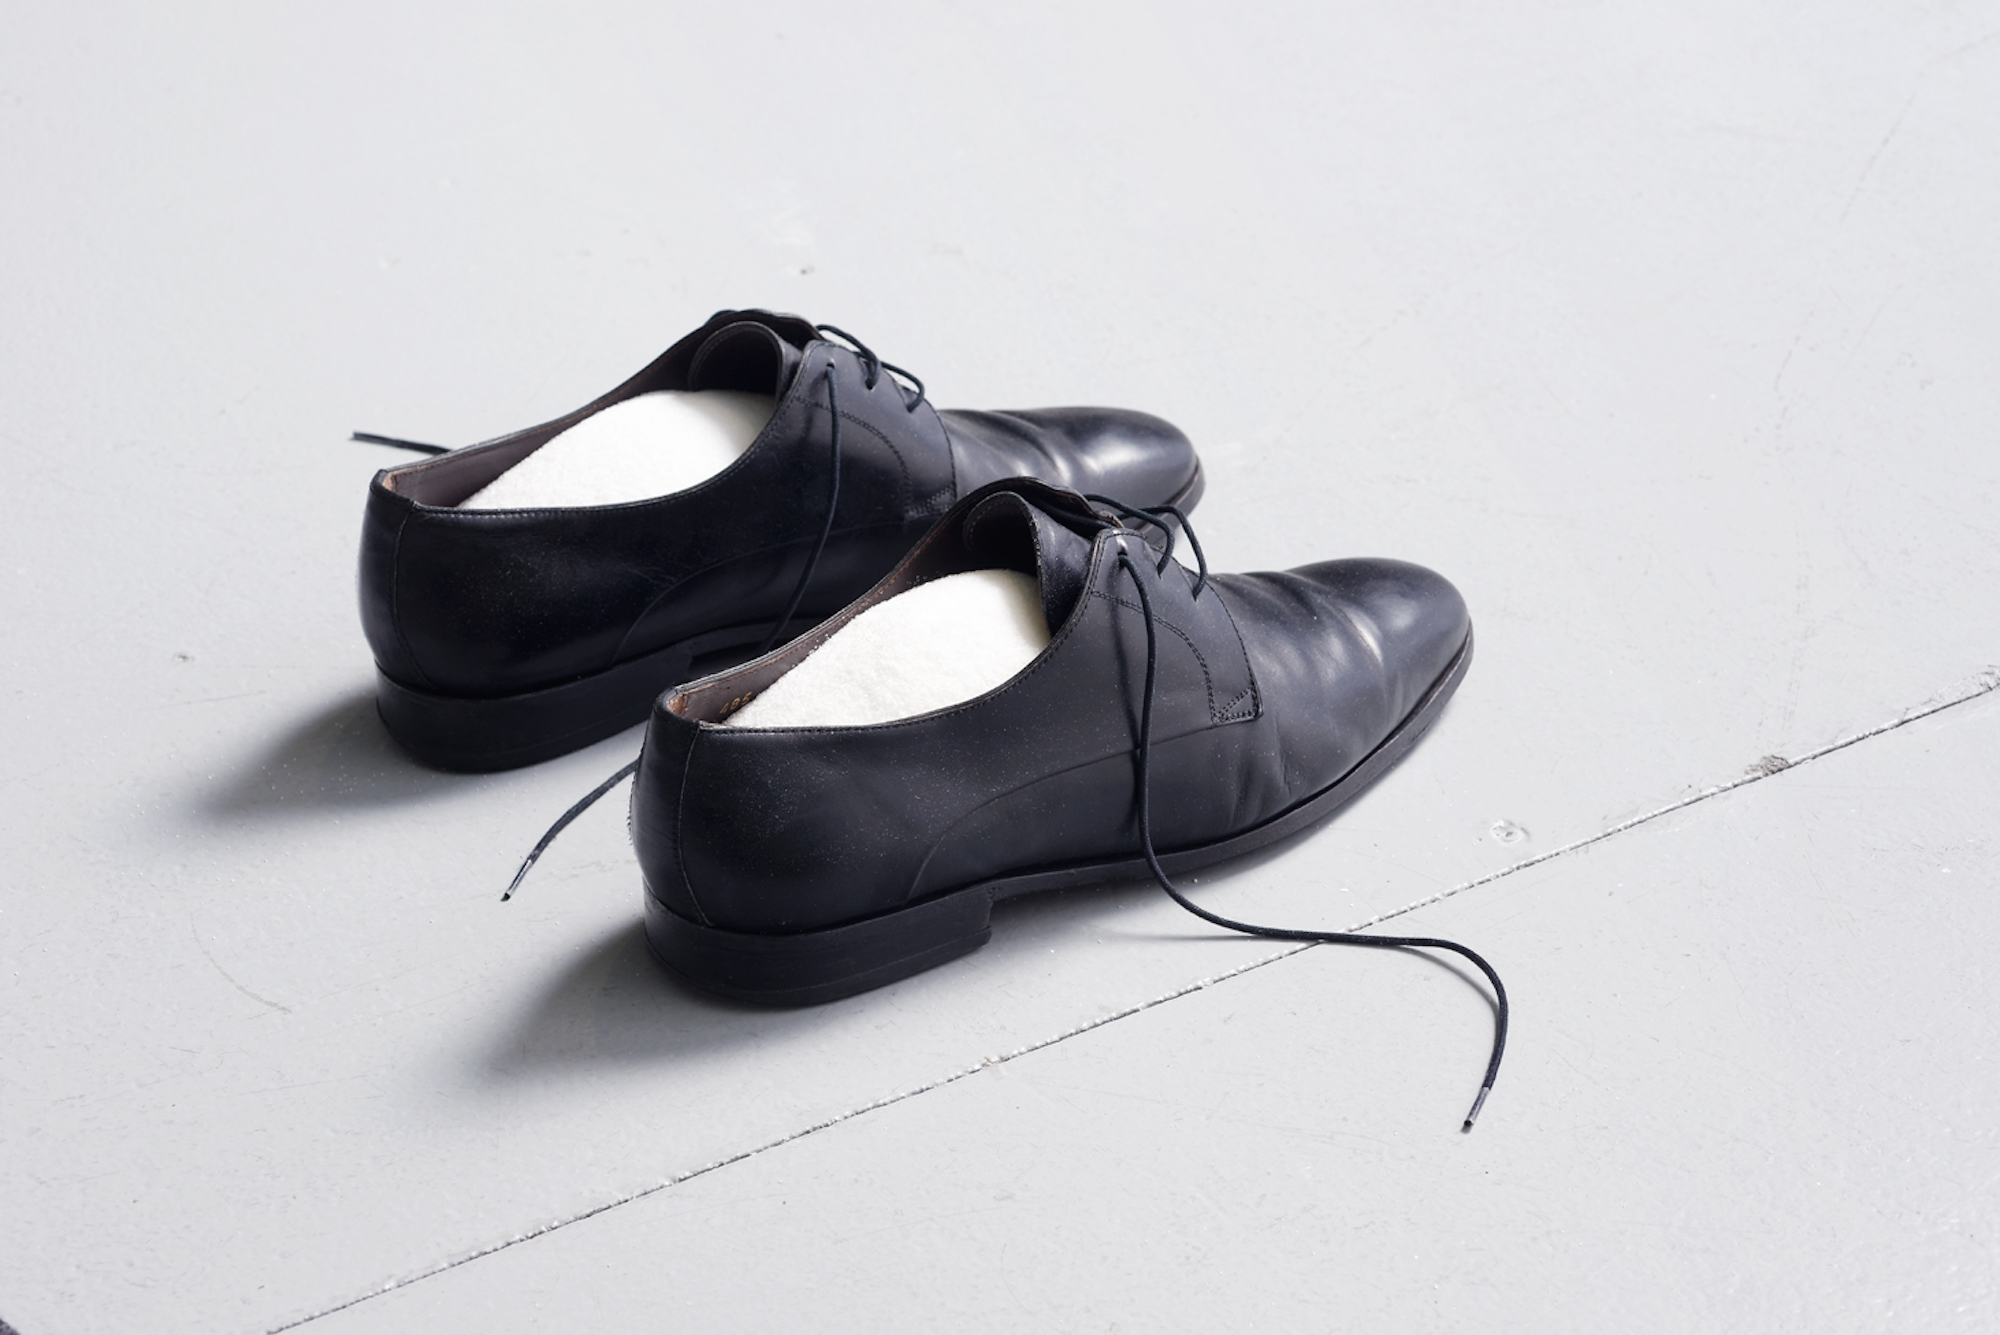 Untitled until now 2016 Artist's shoes, left shoe containing salt, right shoe containing sugar Dimensions variable